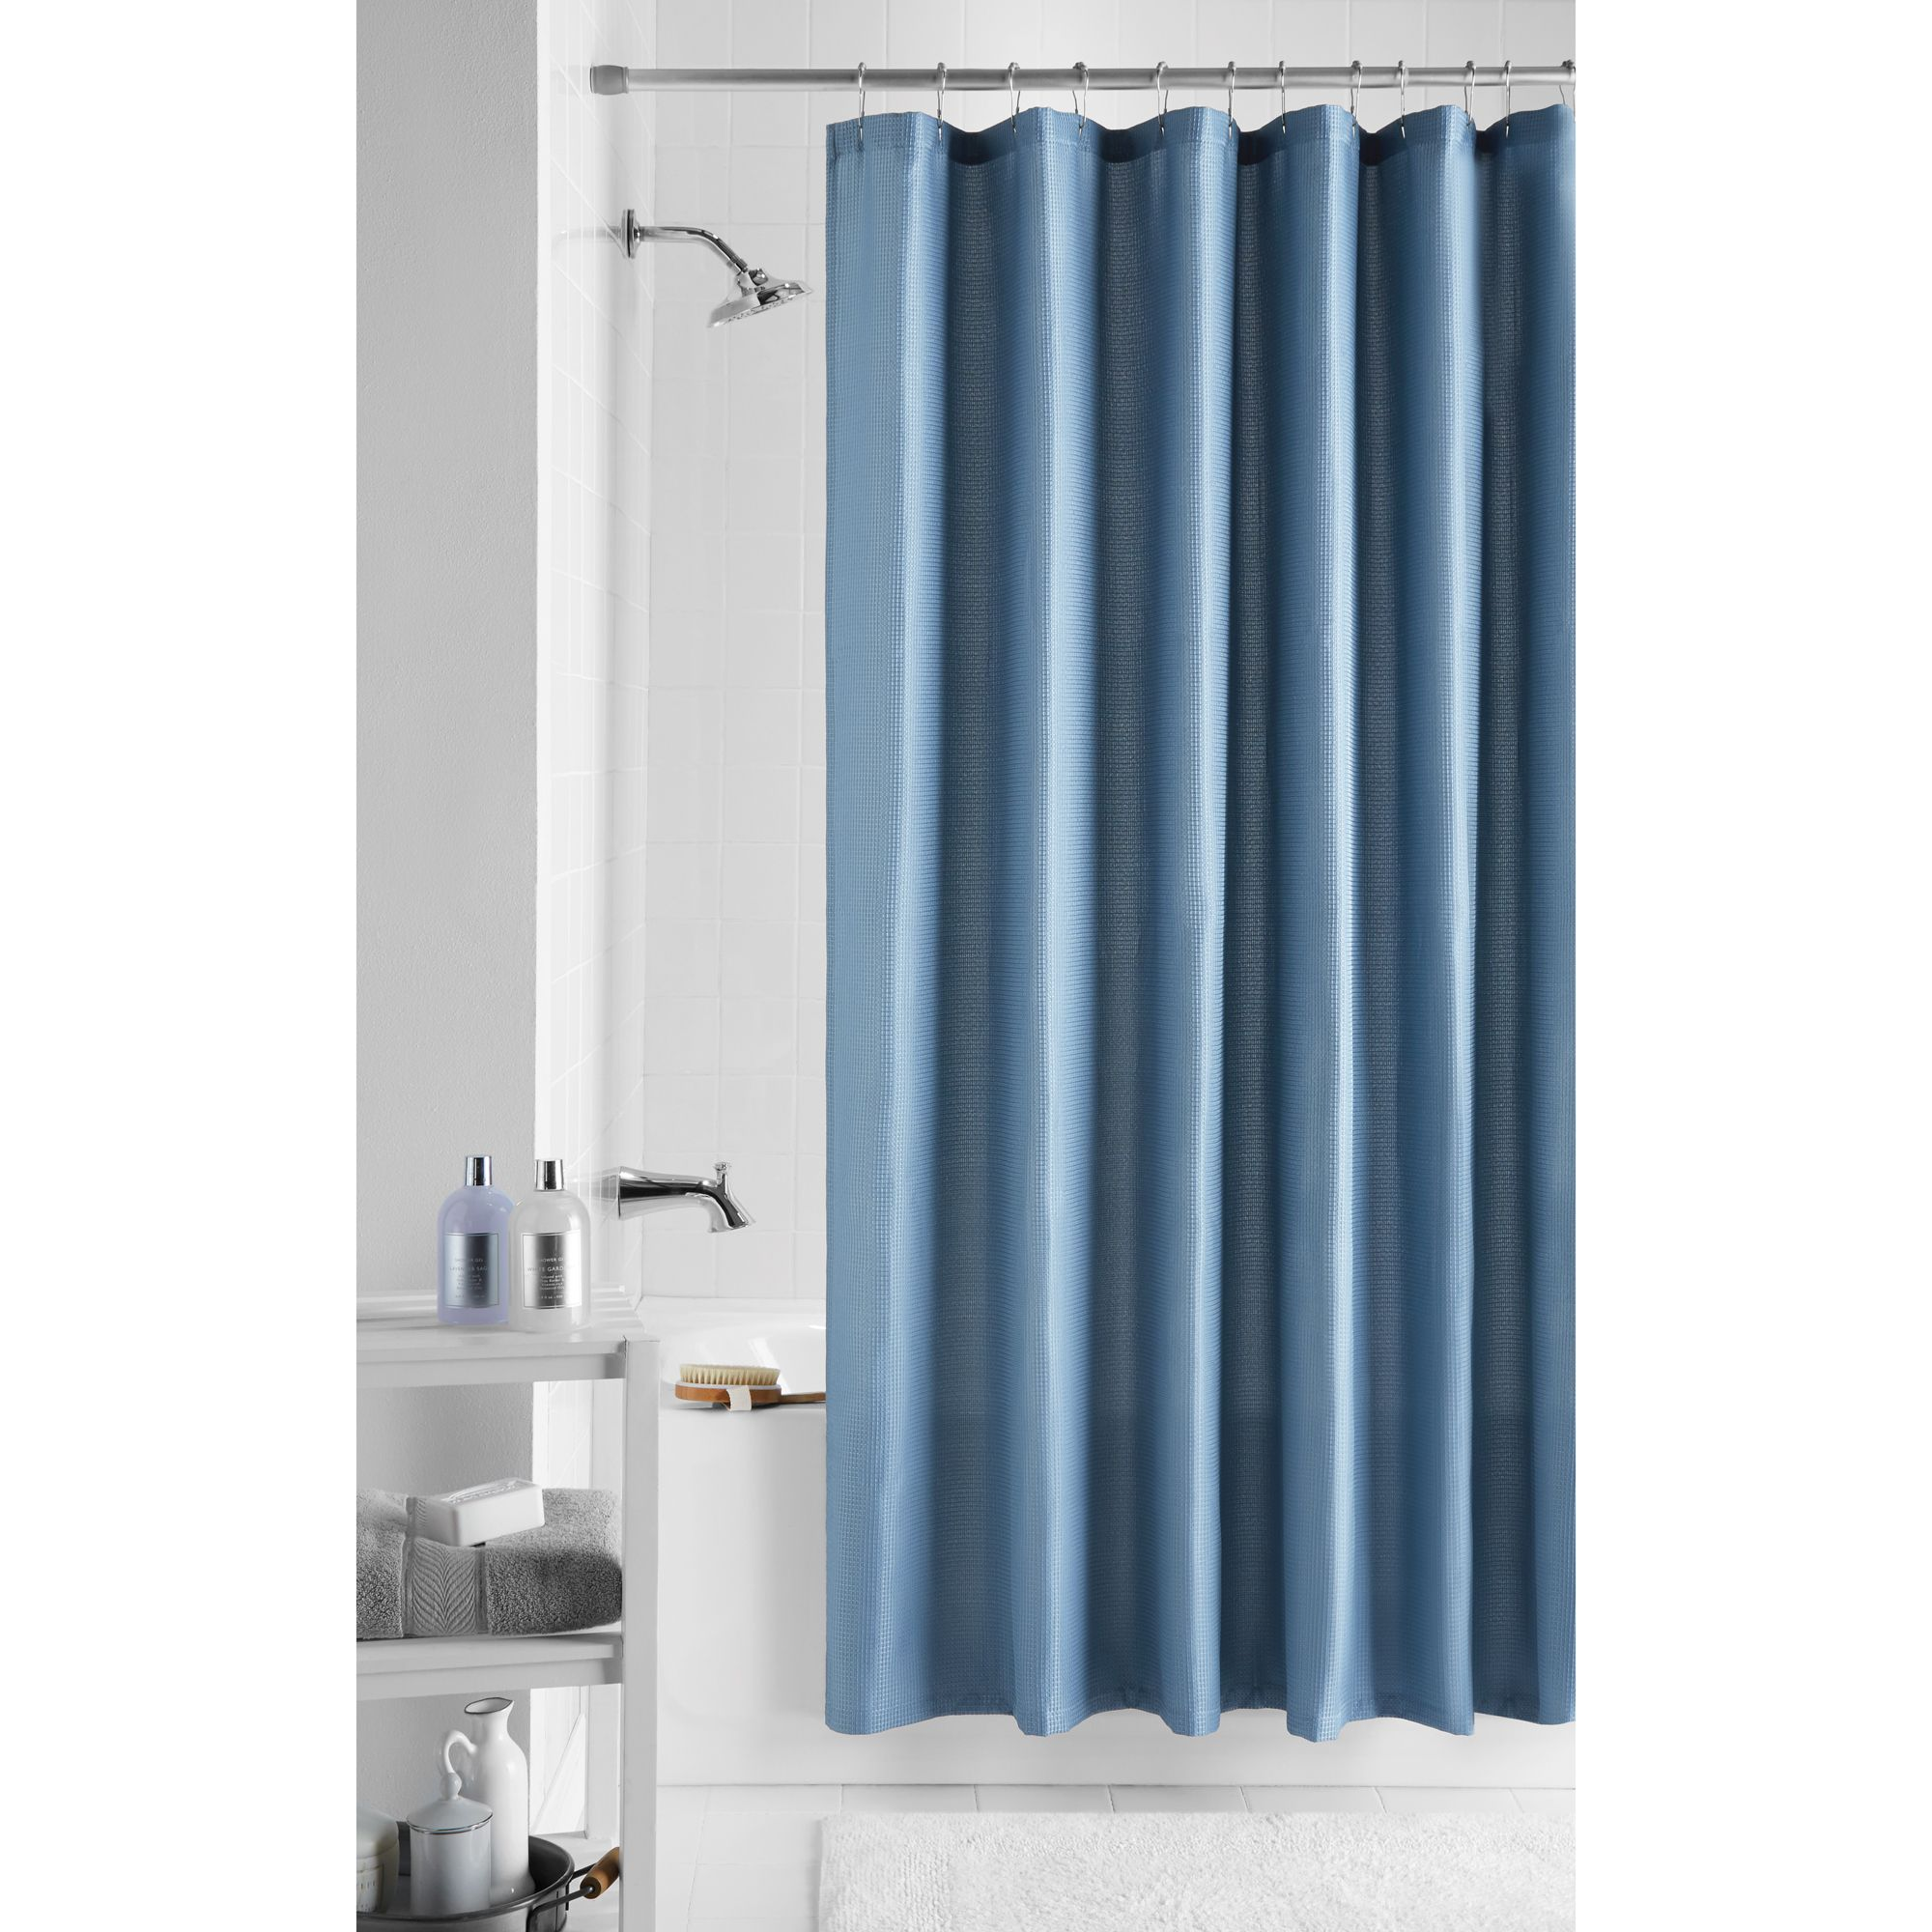 Home In 2020 Light Blue Shower Curtain Fabric Shower Curtains